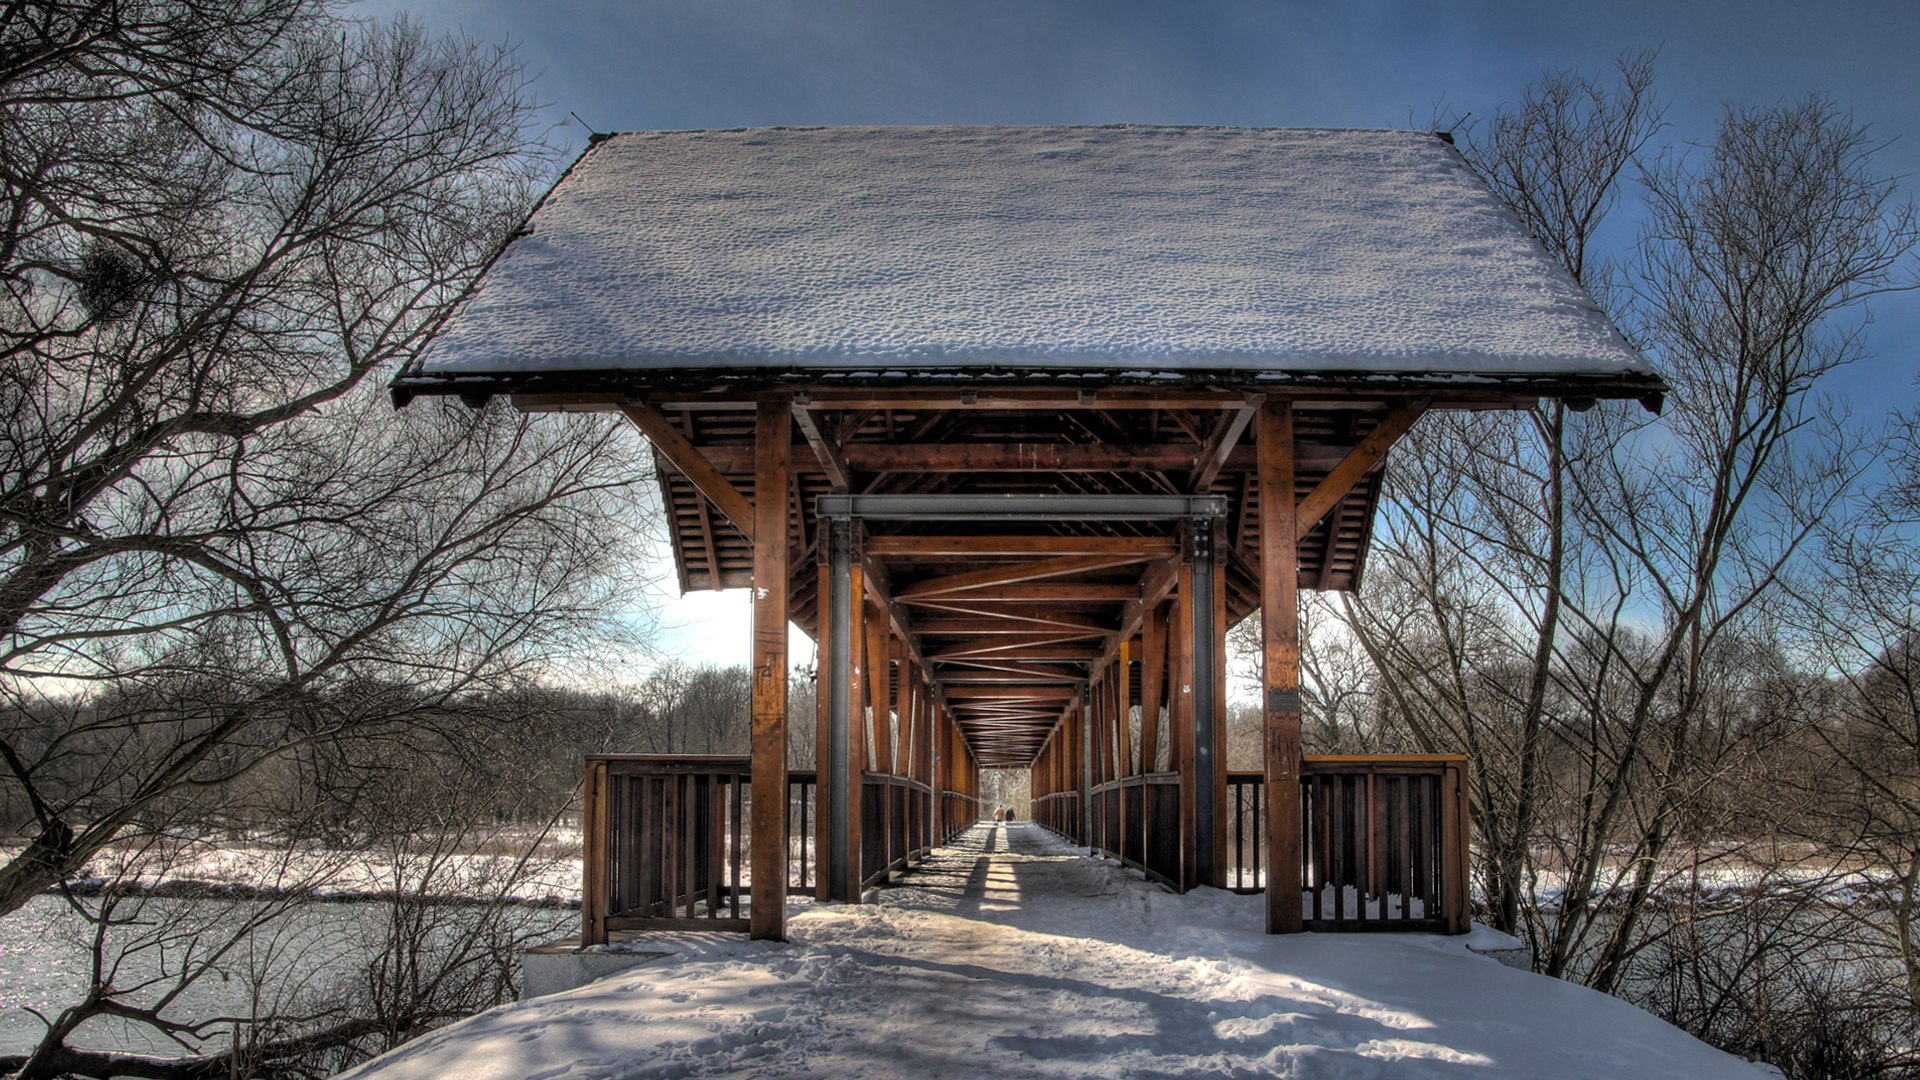 Bridge and Snow